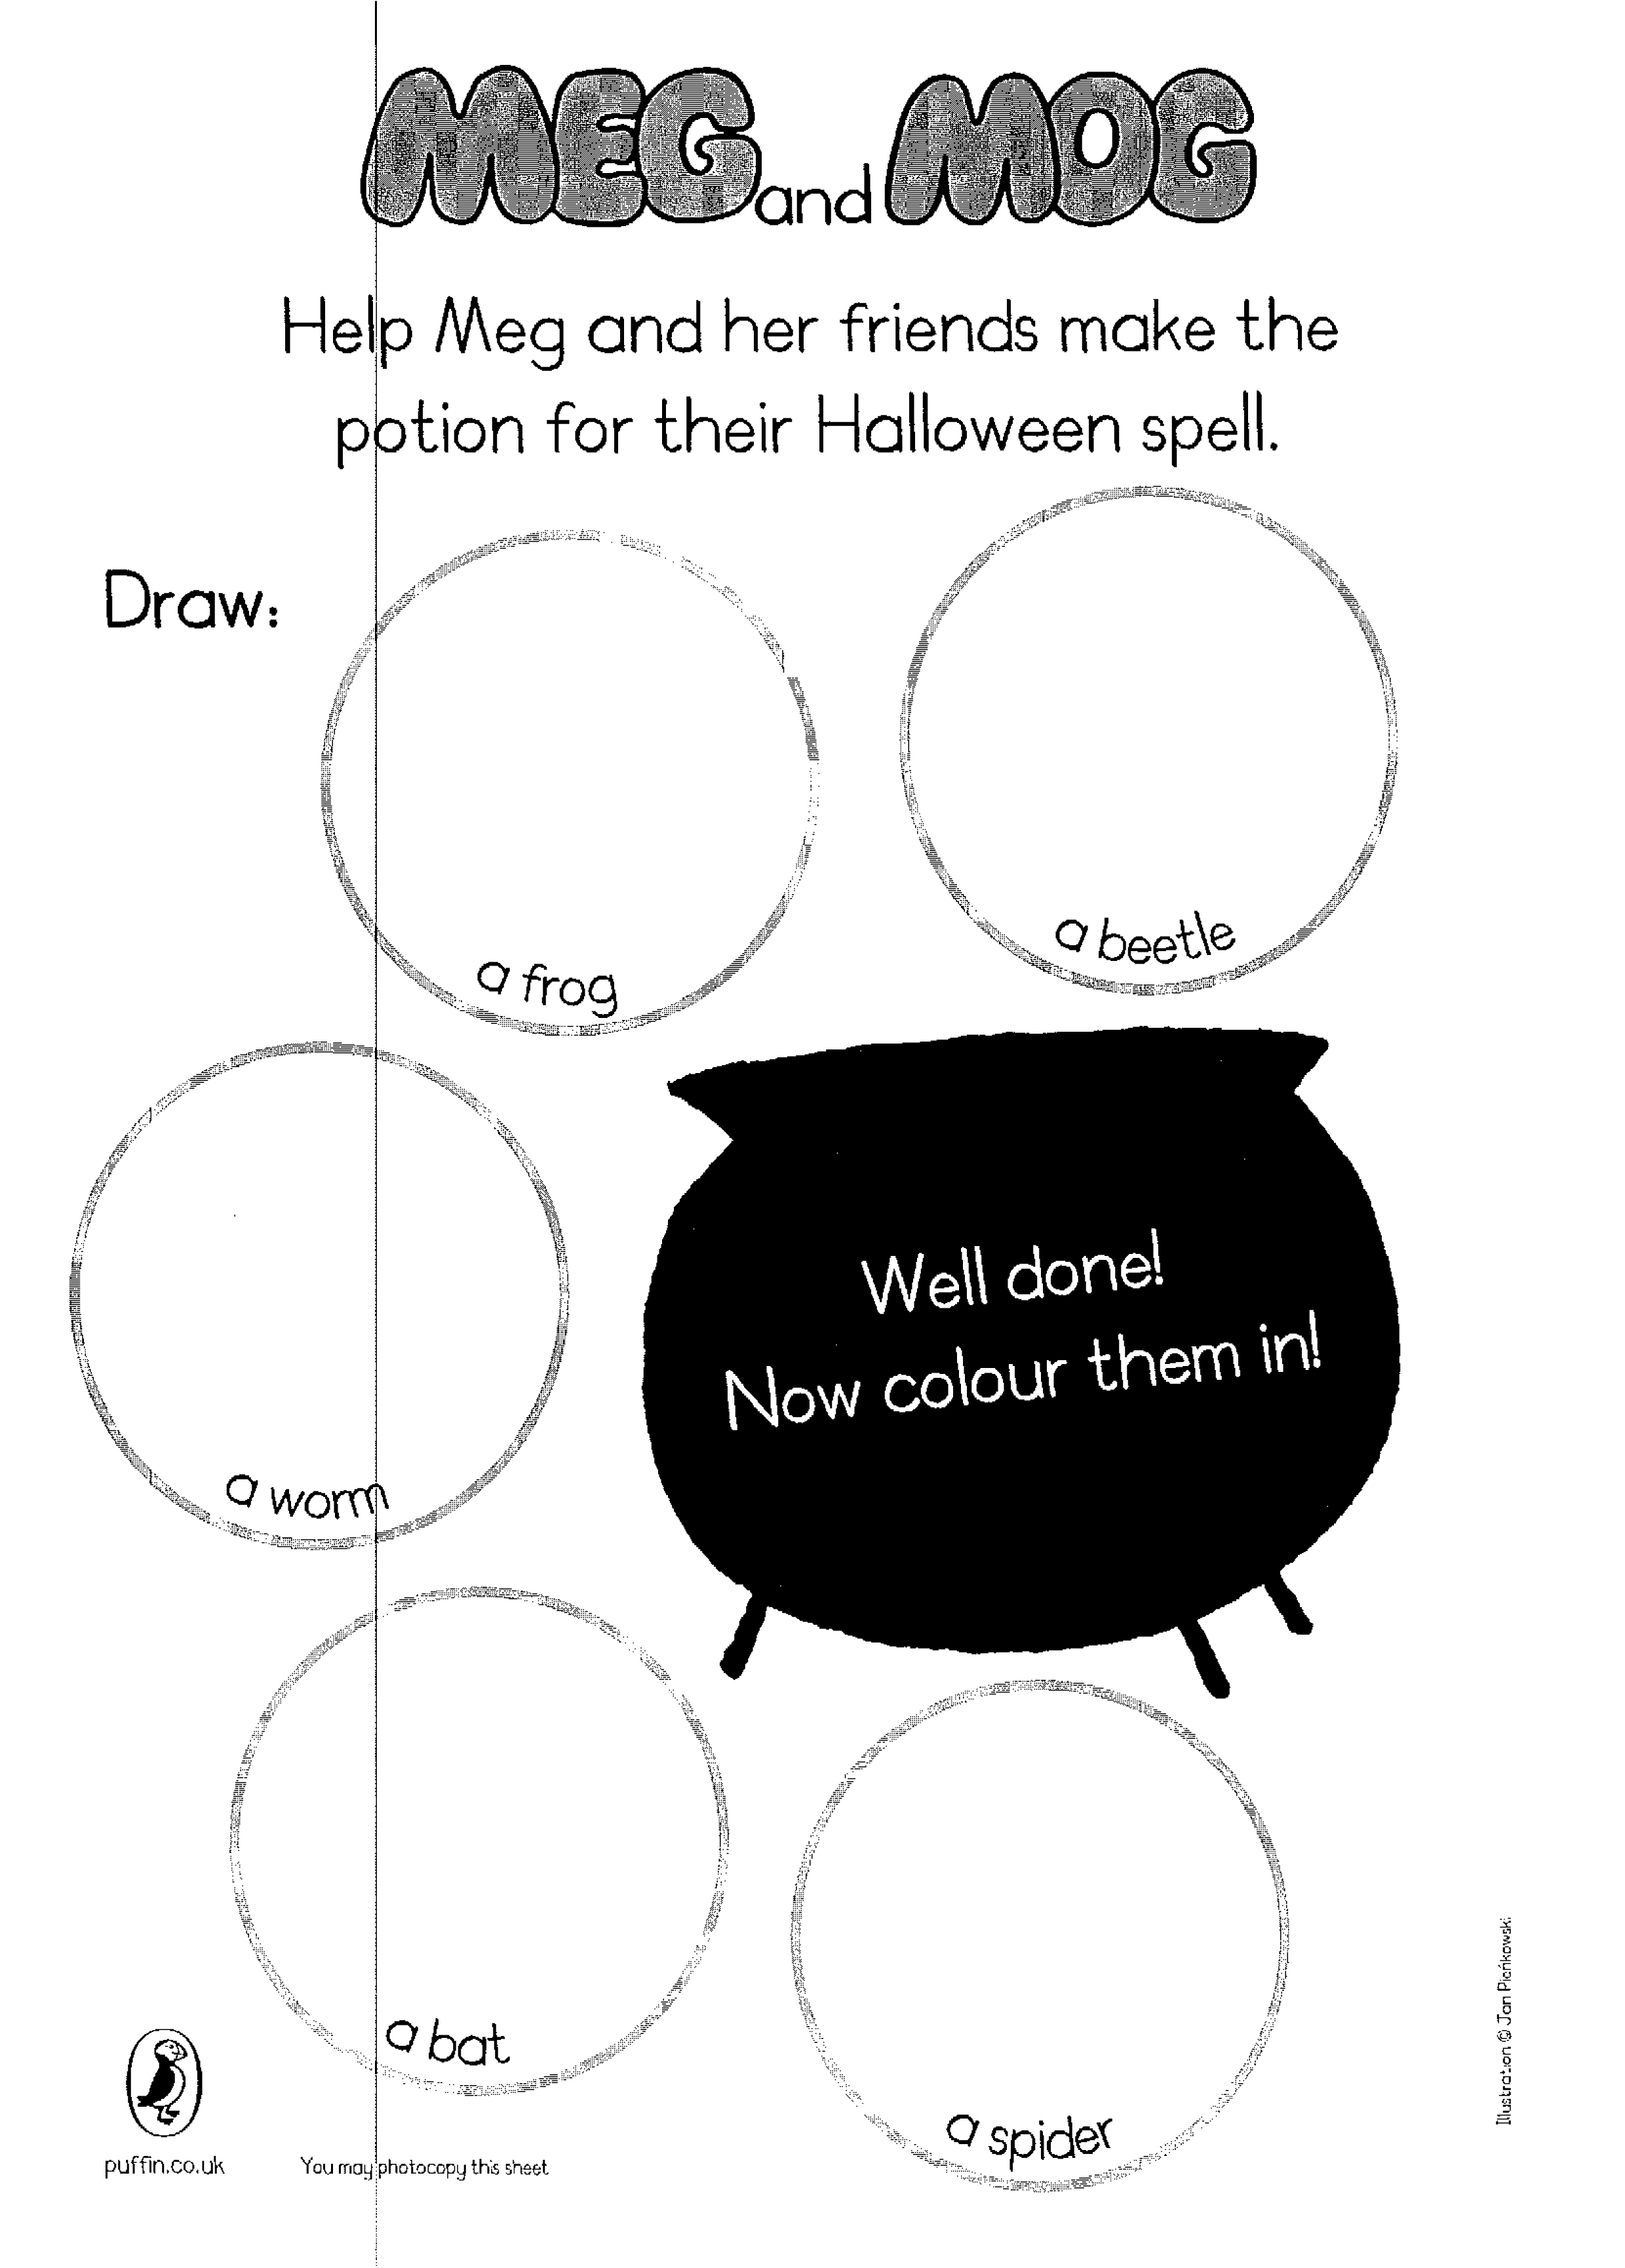 meg and mog halloween spell - scholastic kids' club